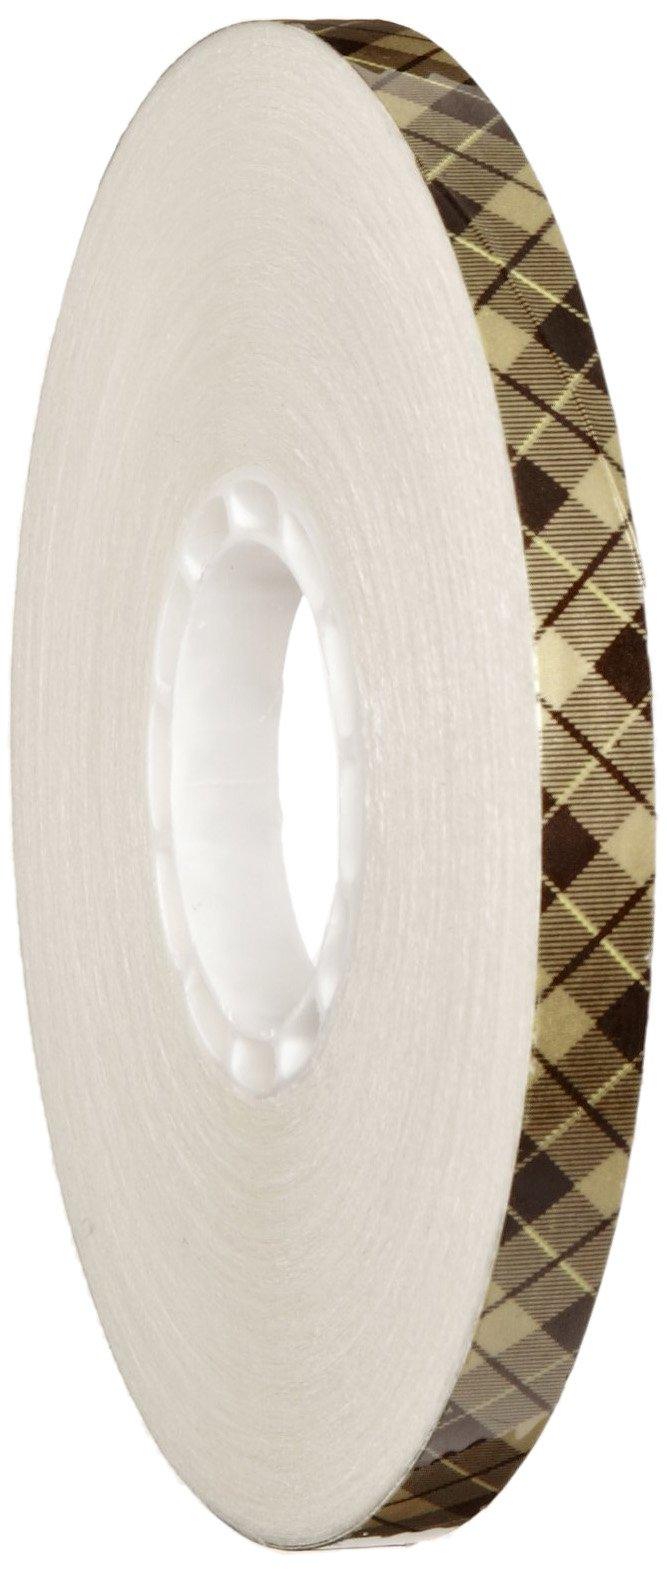 Scotch ATG Adhesive Transfer Tape Acid Free 908 Gold, 0.75 in x 36 yd 2.0 mil (Pack of 1)